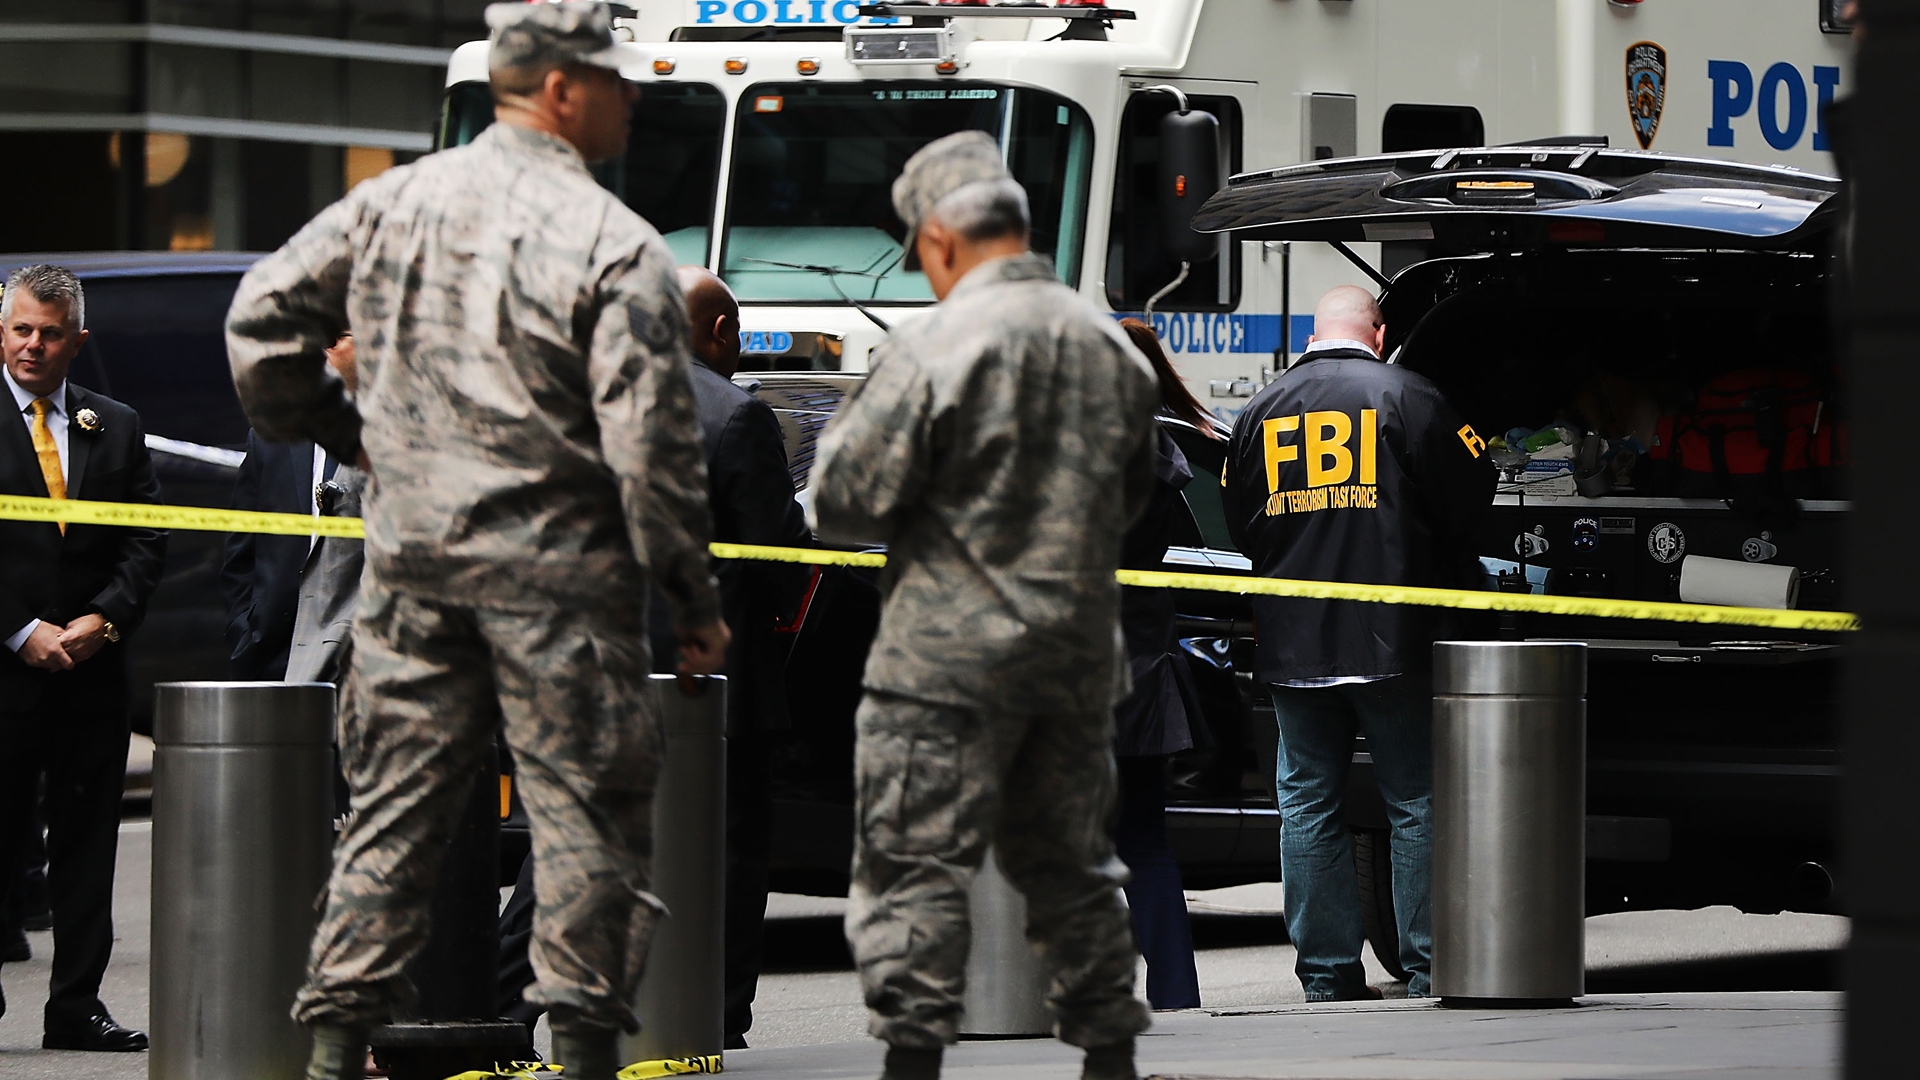 Police, FBI and other emergency workers gather outside the Time Warner Center after an explosive device was found there on Oct. 24, 2018 in New York City. (Credit: Spencer Platt/Getty Images)